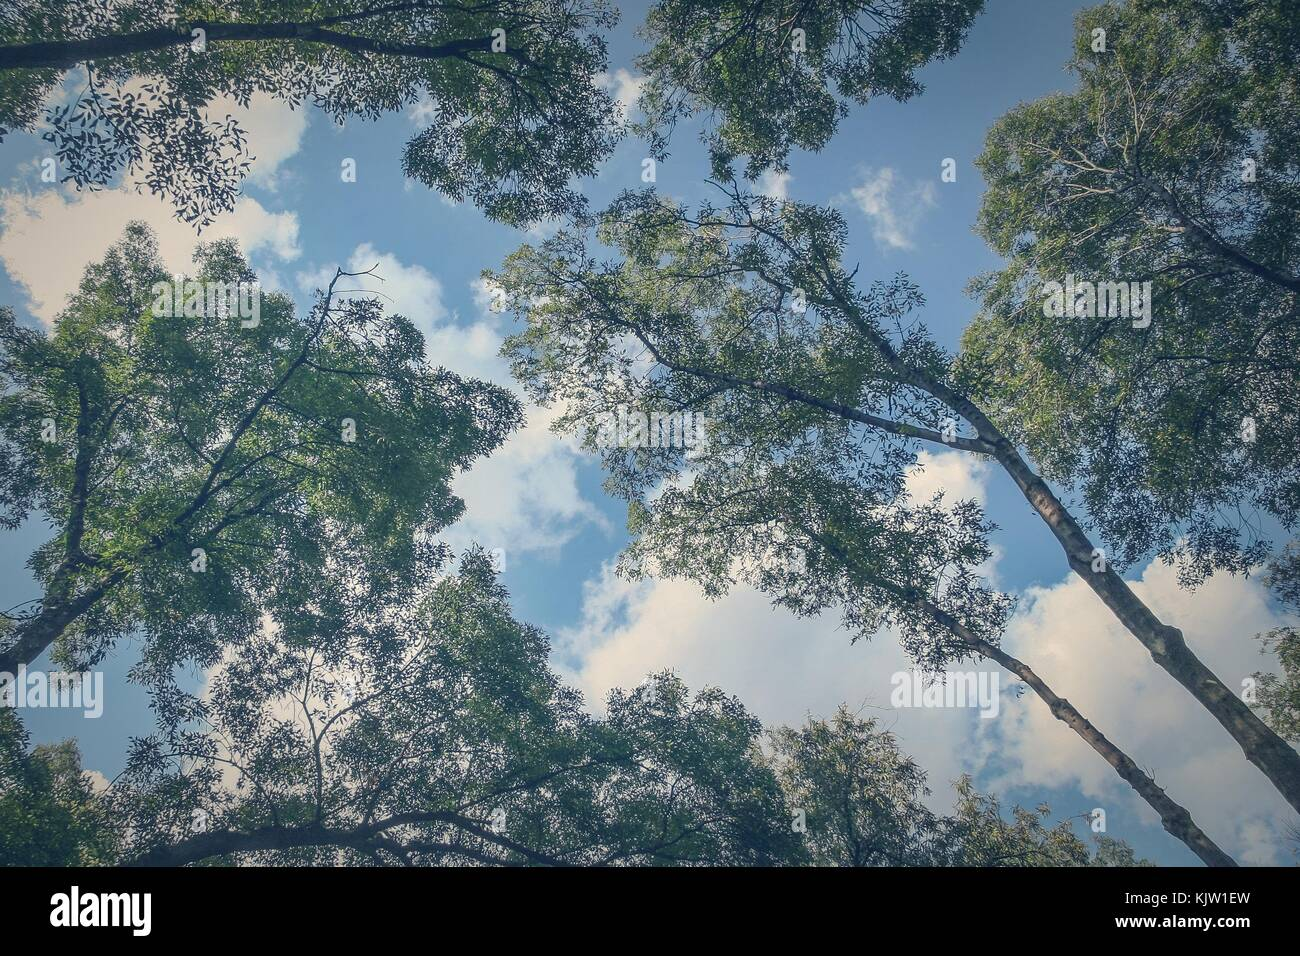 The branches of these huge trees seem to have grown to reach the clouds of the sky. - Stock Image